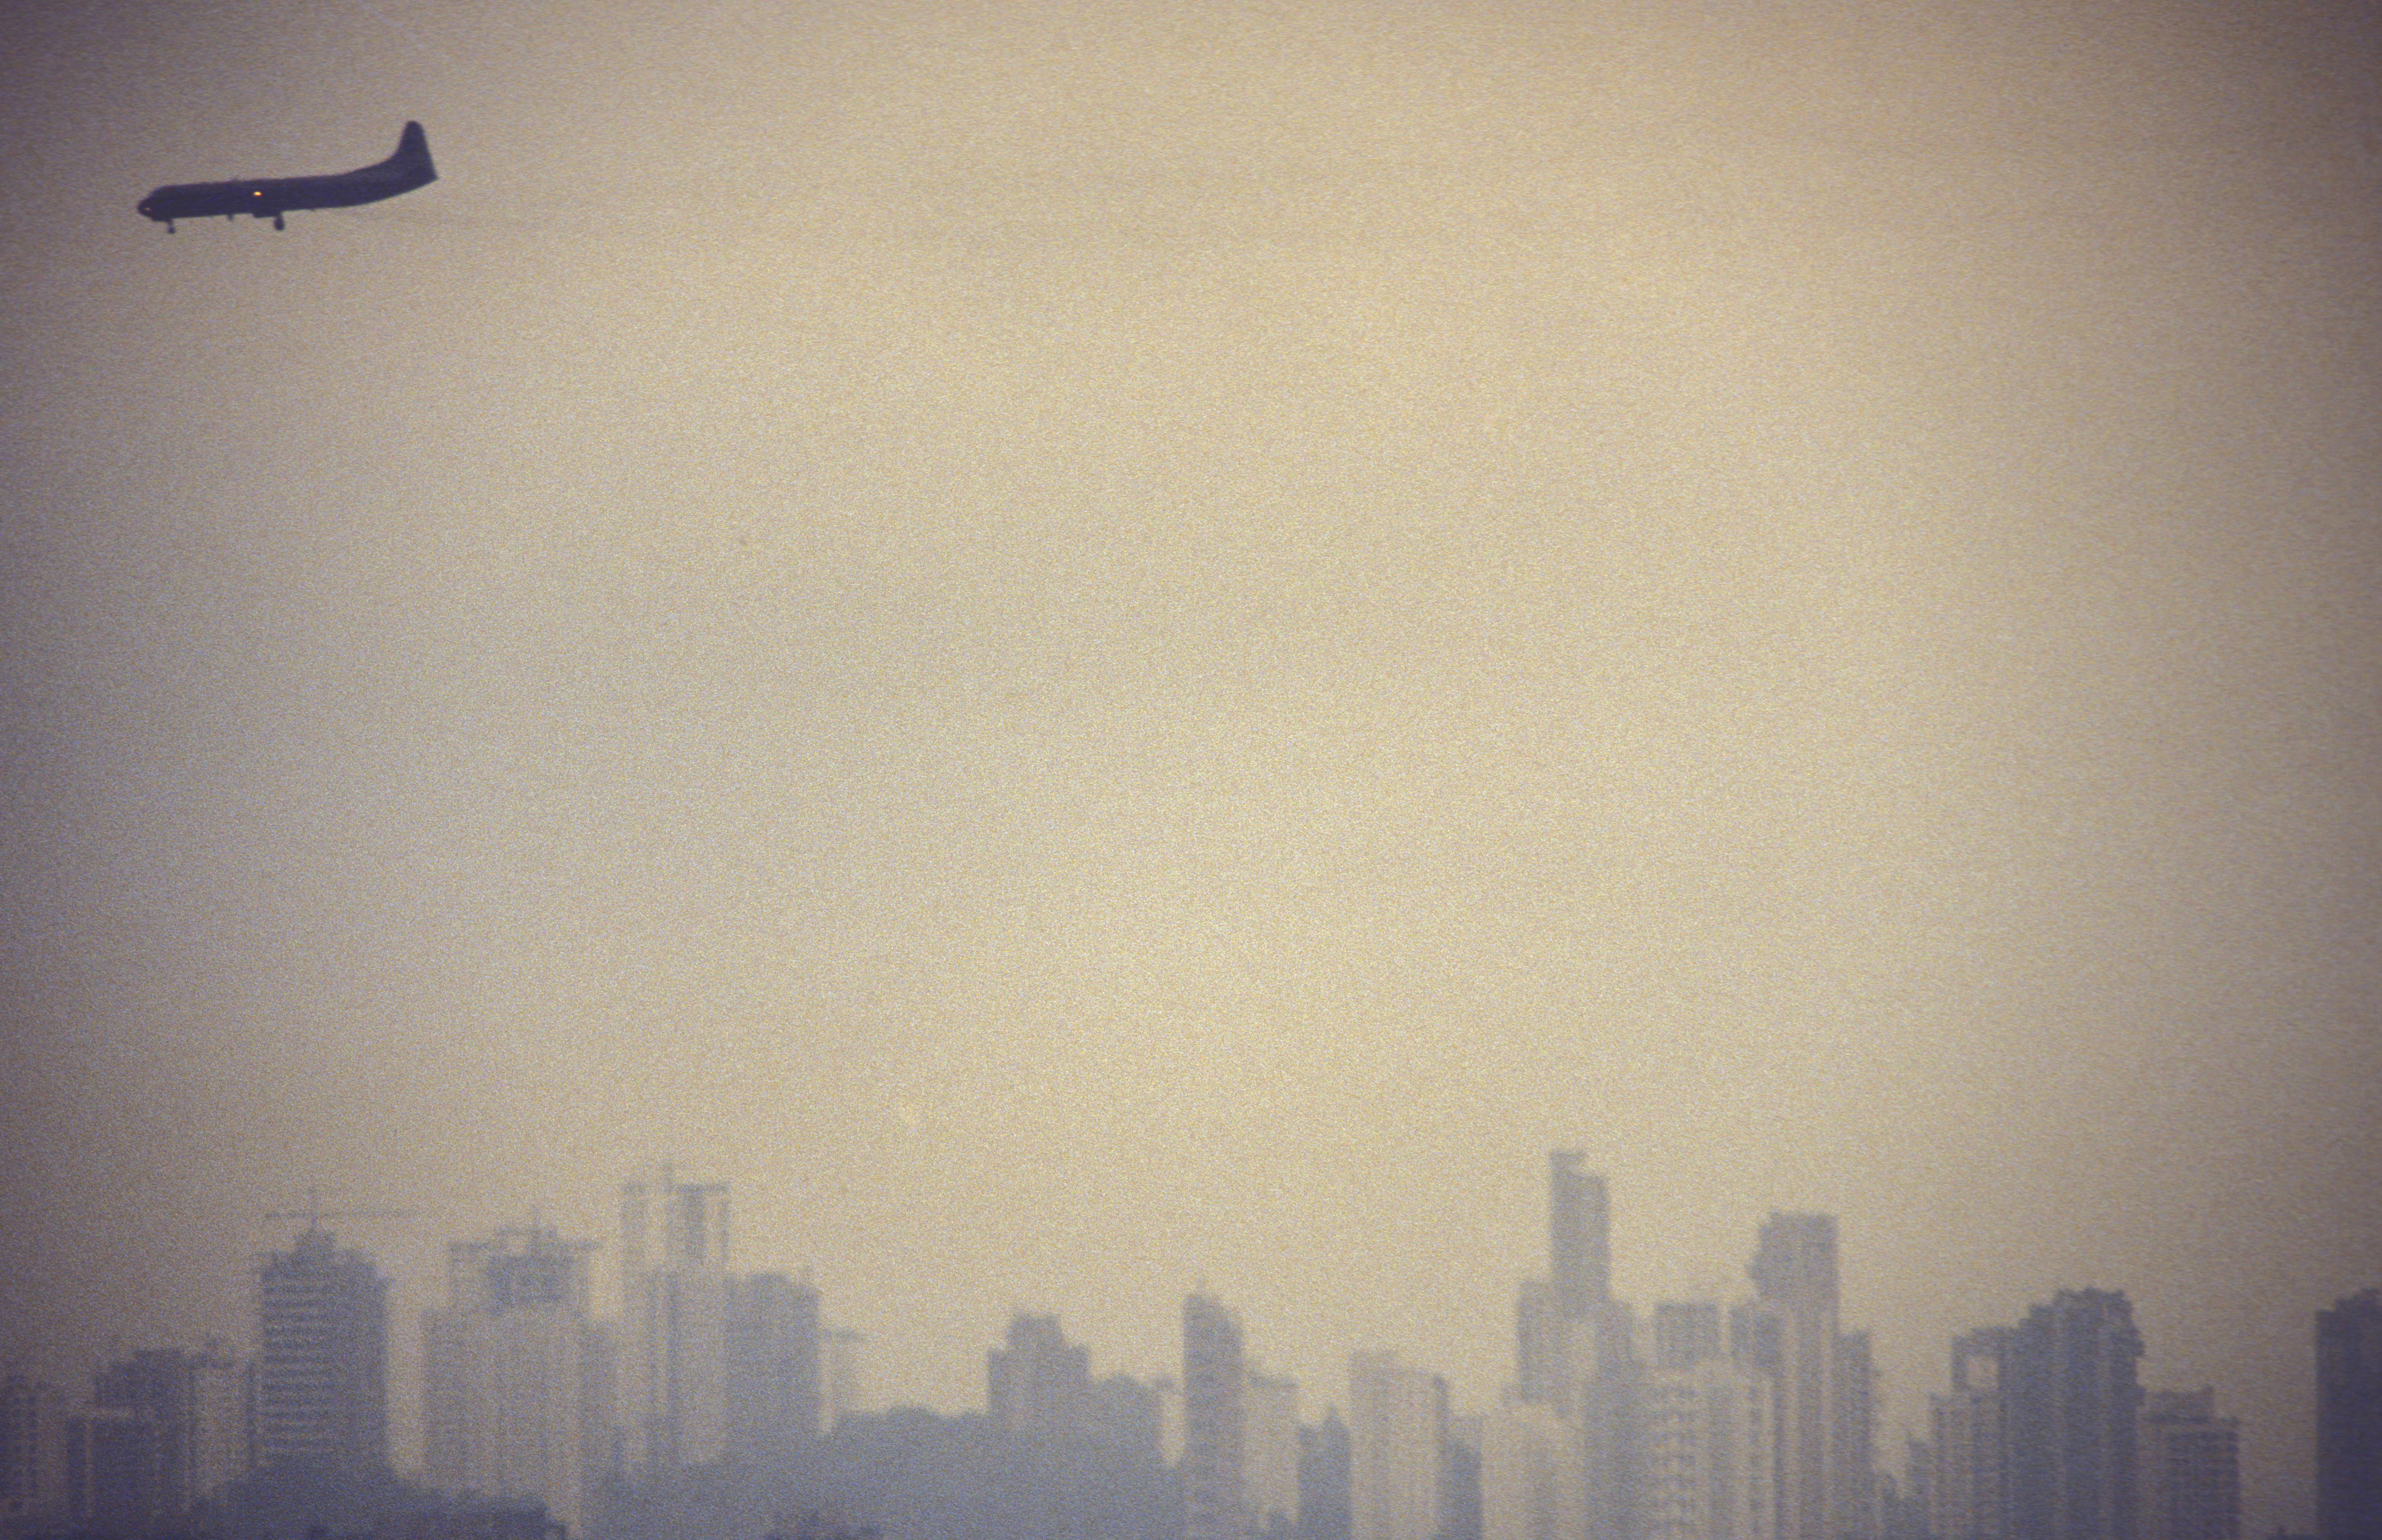 Air pollution. Airplane flies over S?o Paulo city, Brazil